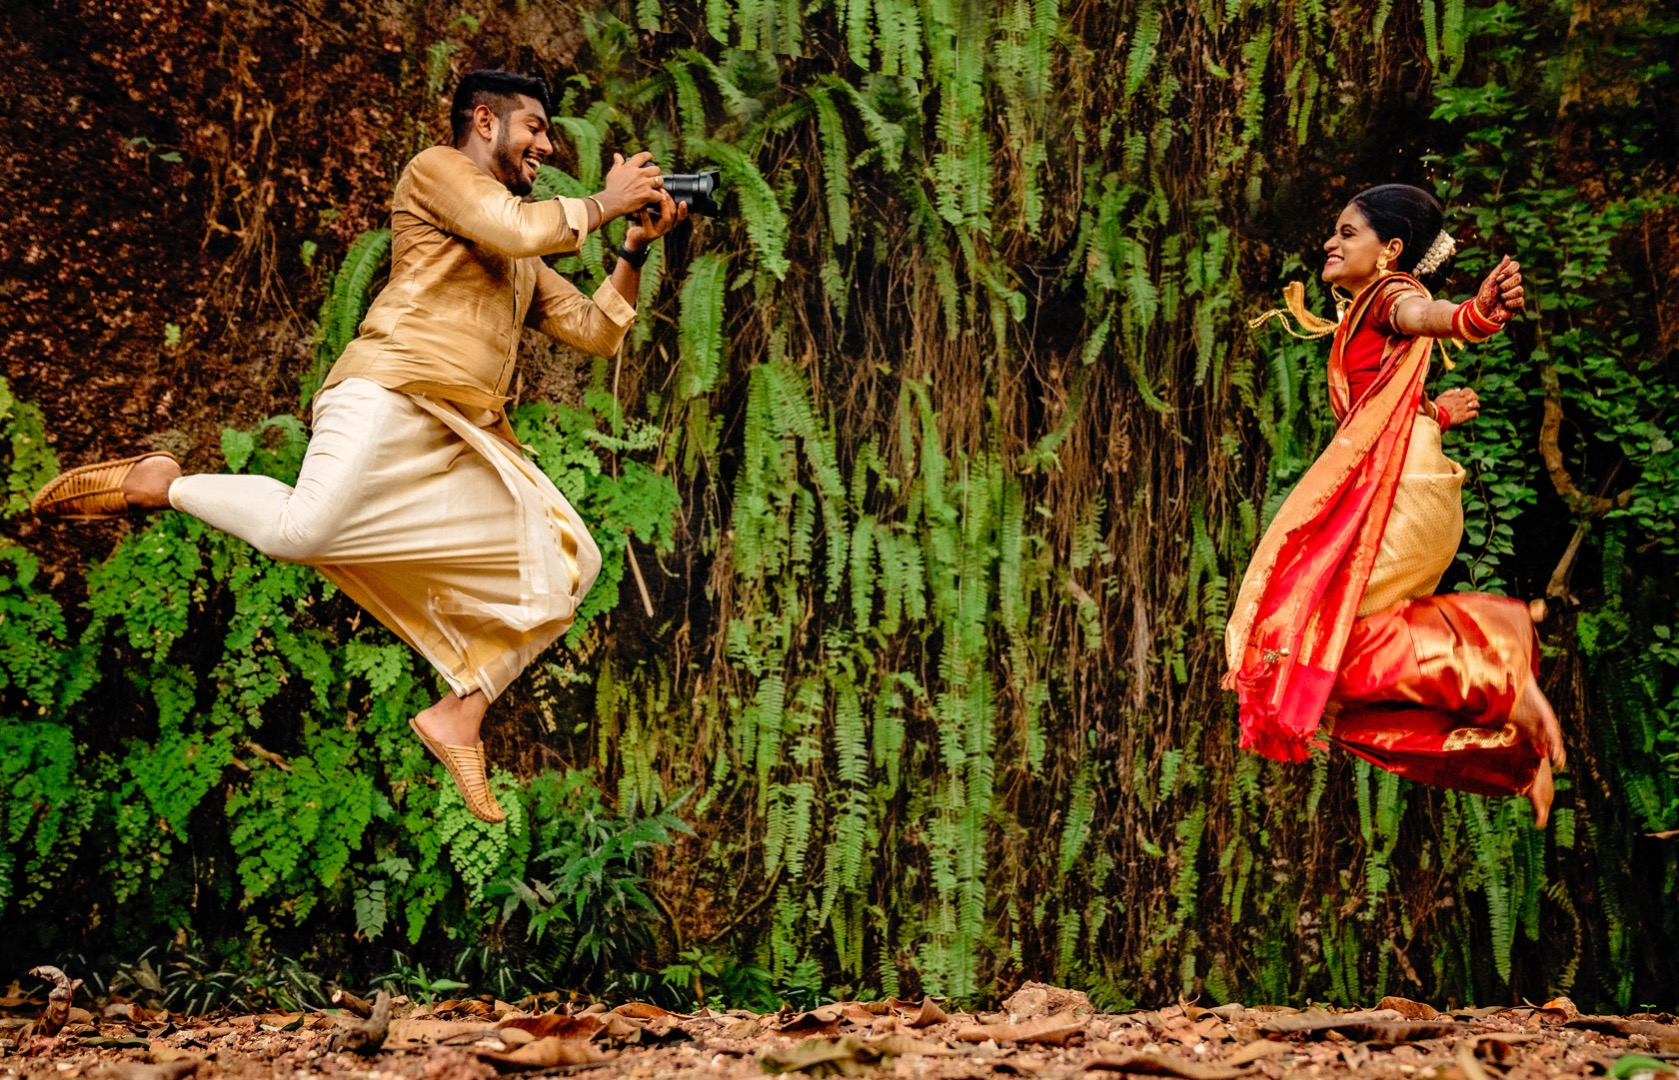 aesthetic shot of the south indian couple